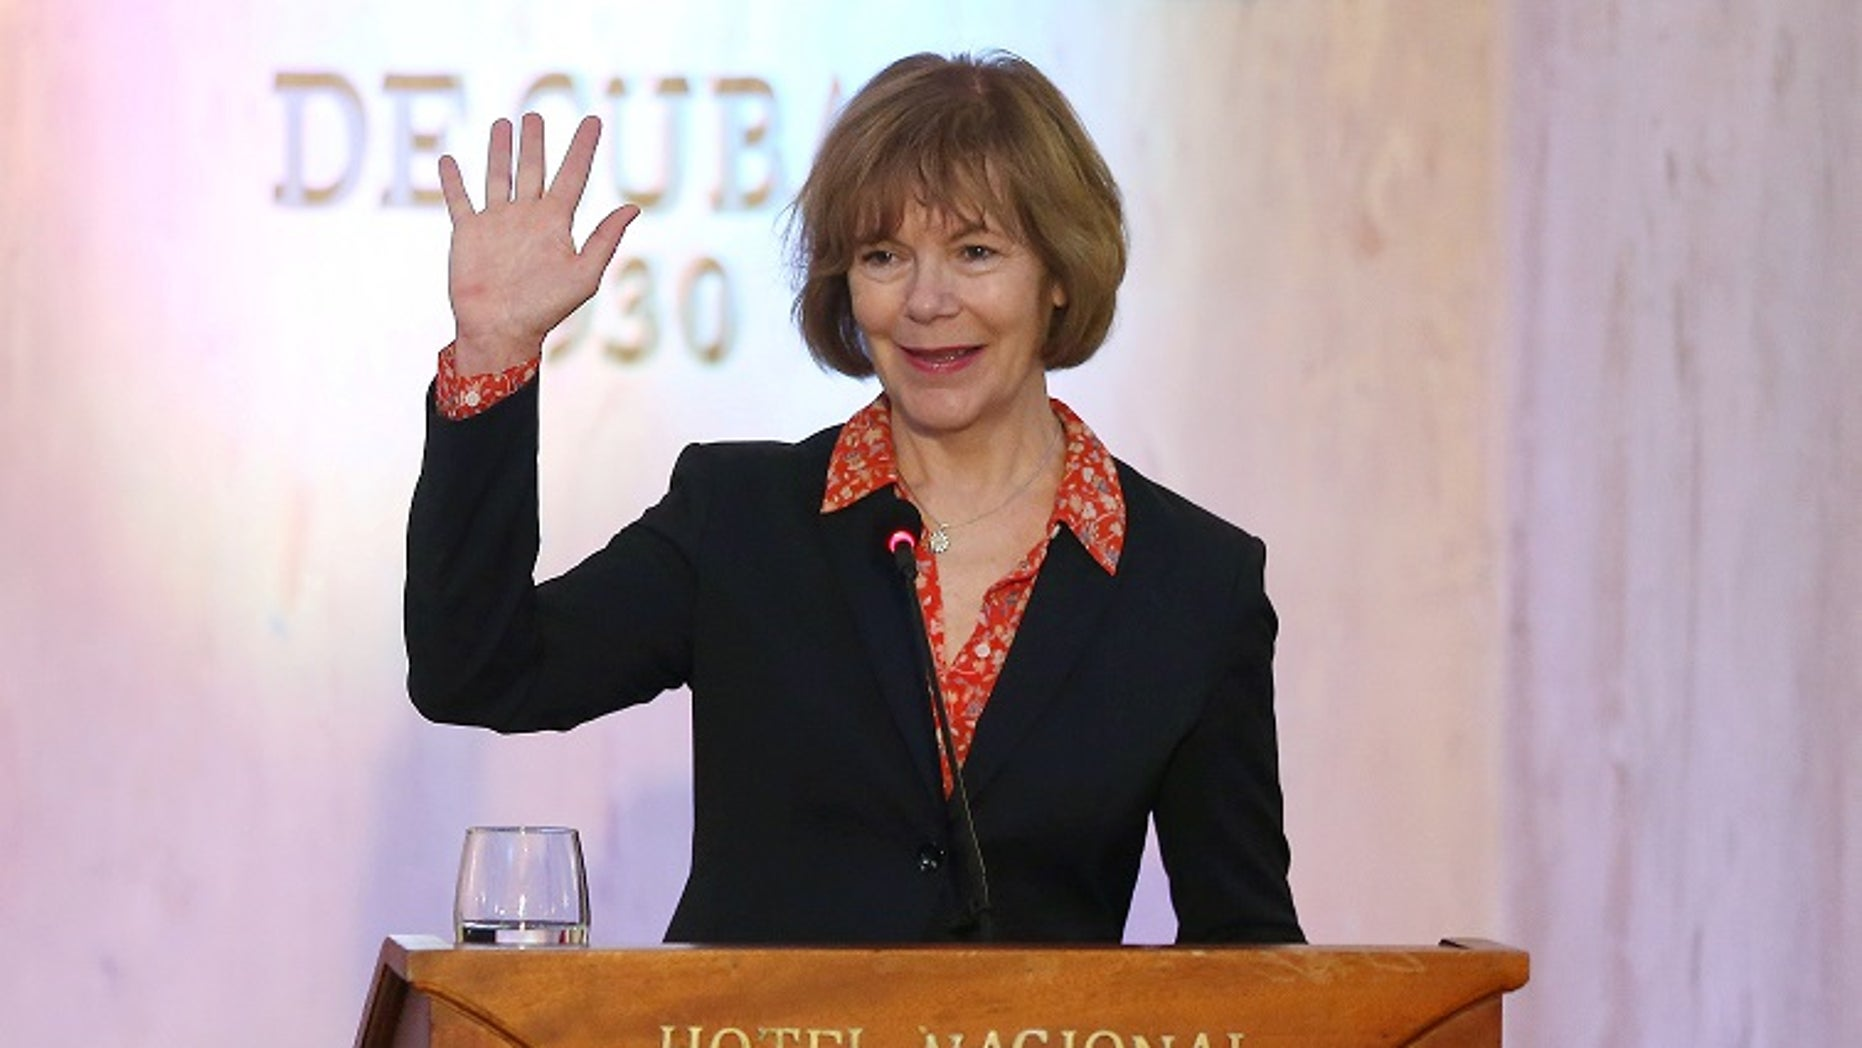 Minnesota Lt. Gov. Tina Smith was selected by the state's governor to finish out Al Franken's term in the U.S. Senate.